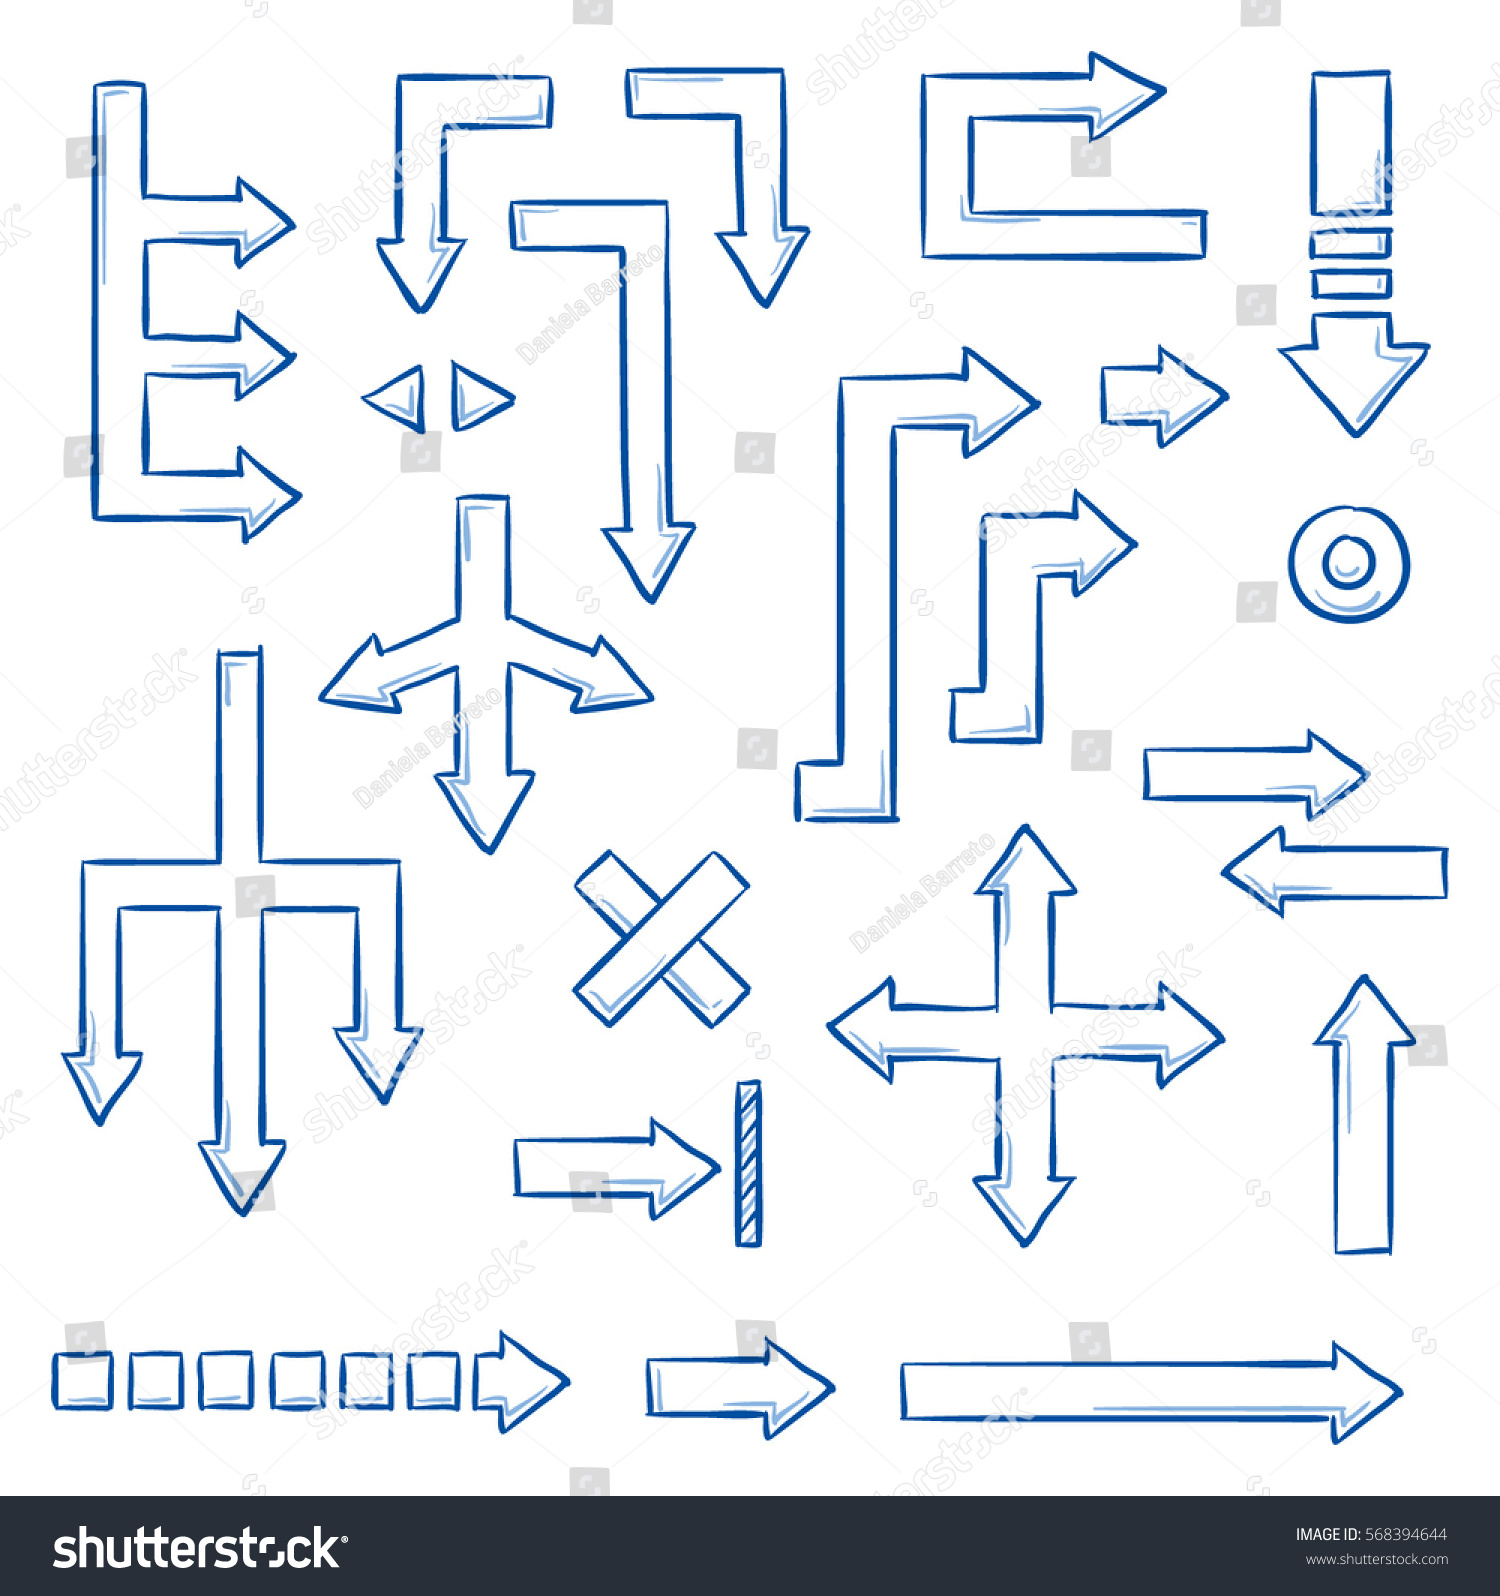 Set different straight arrows work flow stock vector 568394644 set of different straight arrows for work flow charts video clips or info graphics nvjuhfo Choice Image